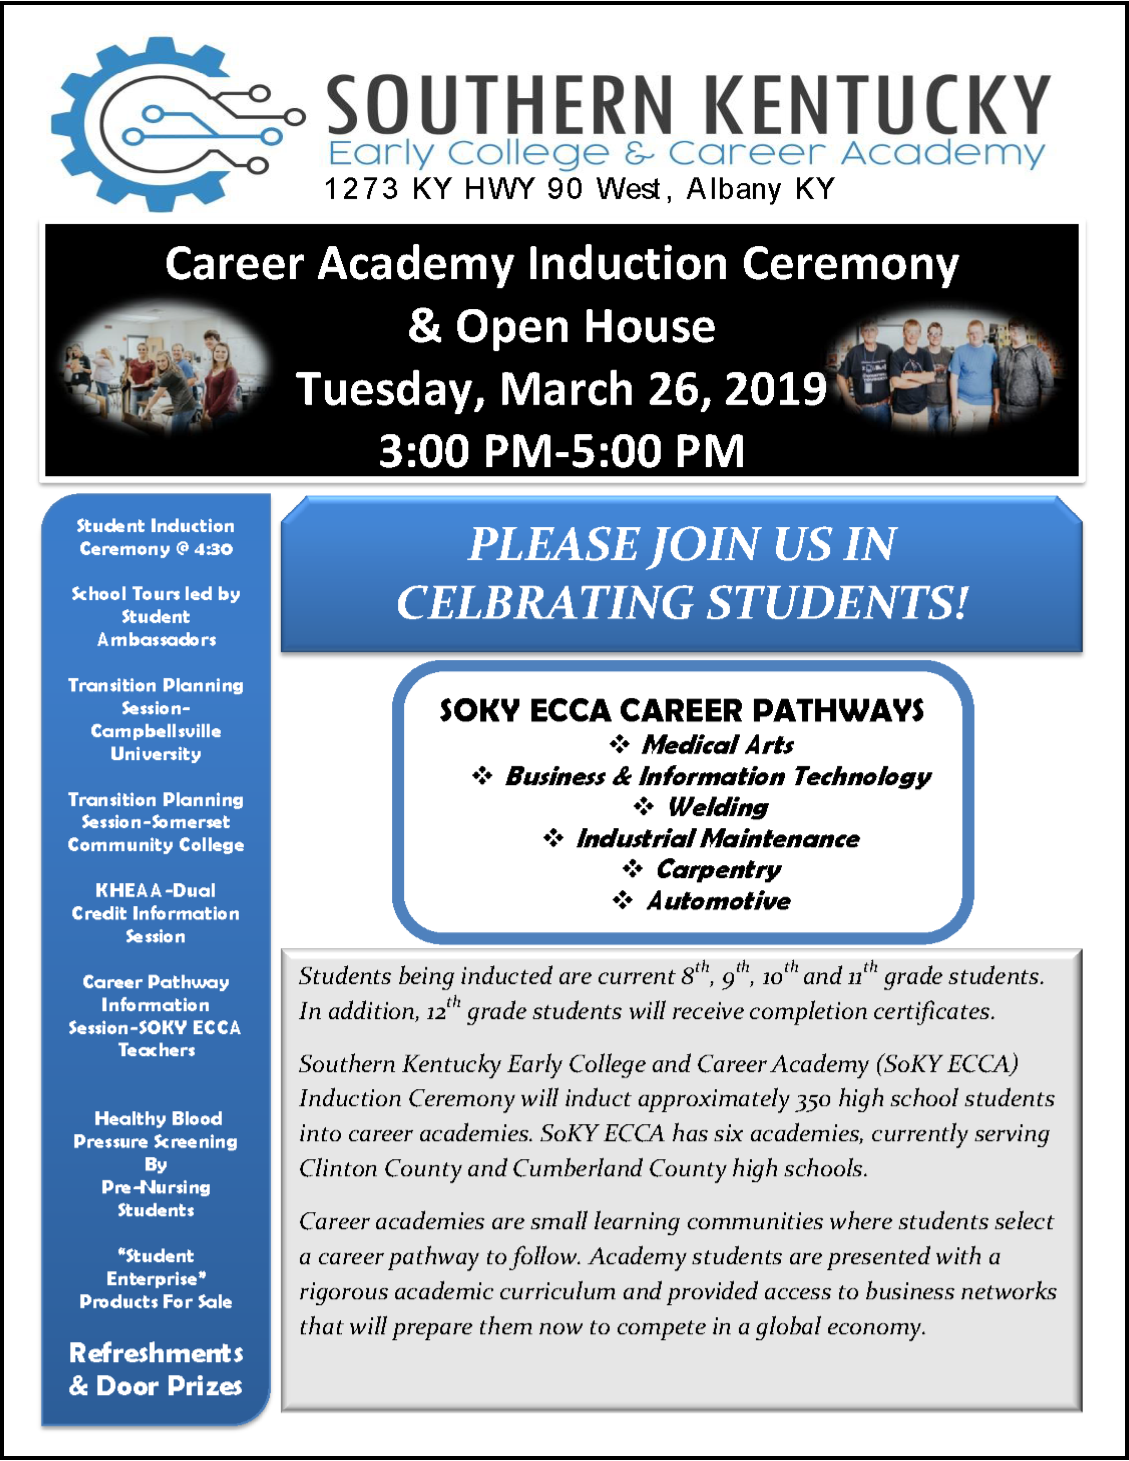 Join us for the Southern Kentucky Early College & Career Academy Induction Ceremony and Open House on Tuesday, March 26th from 3:00 - 5:00 PM.